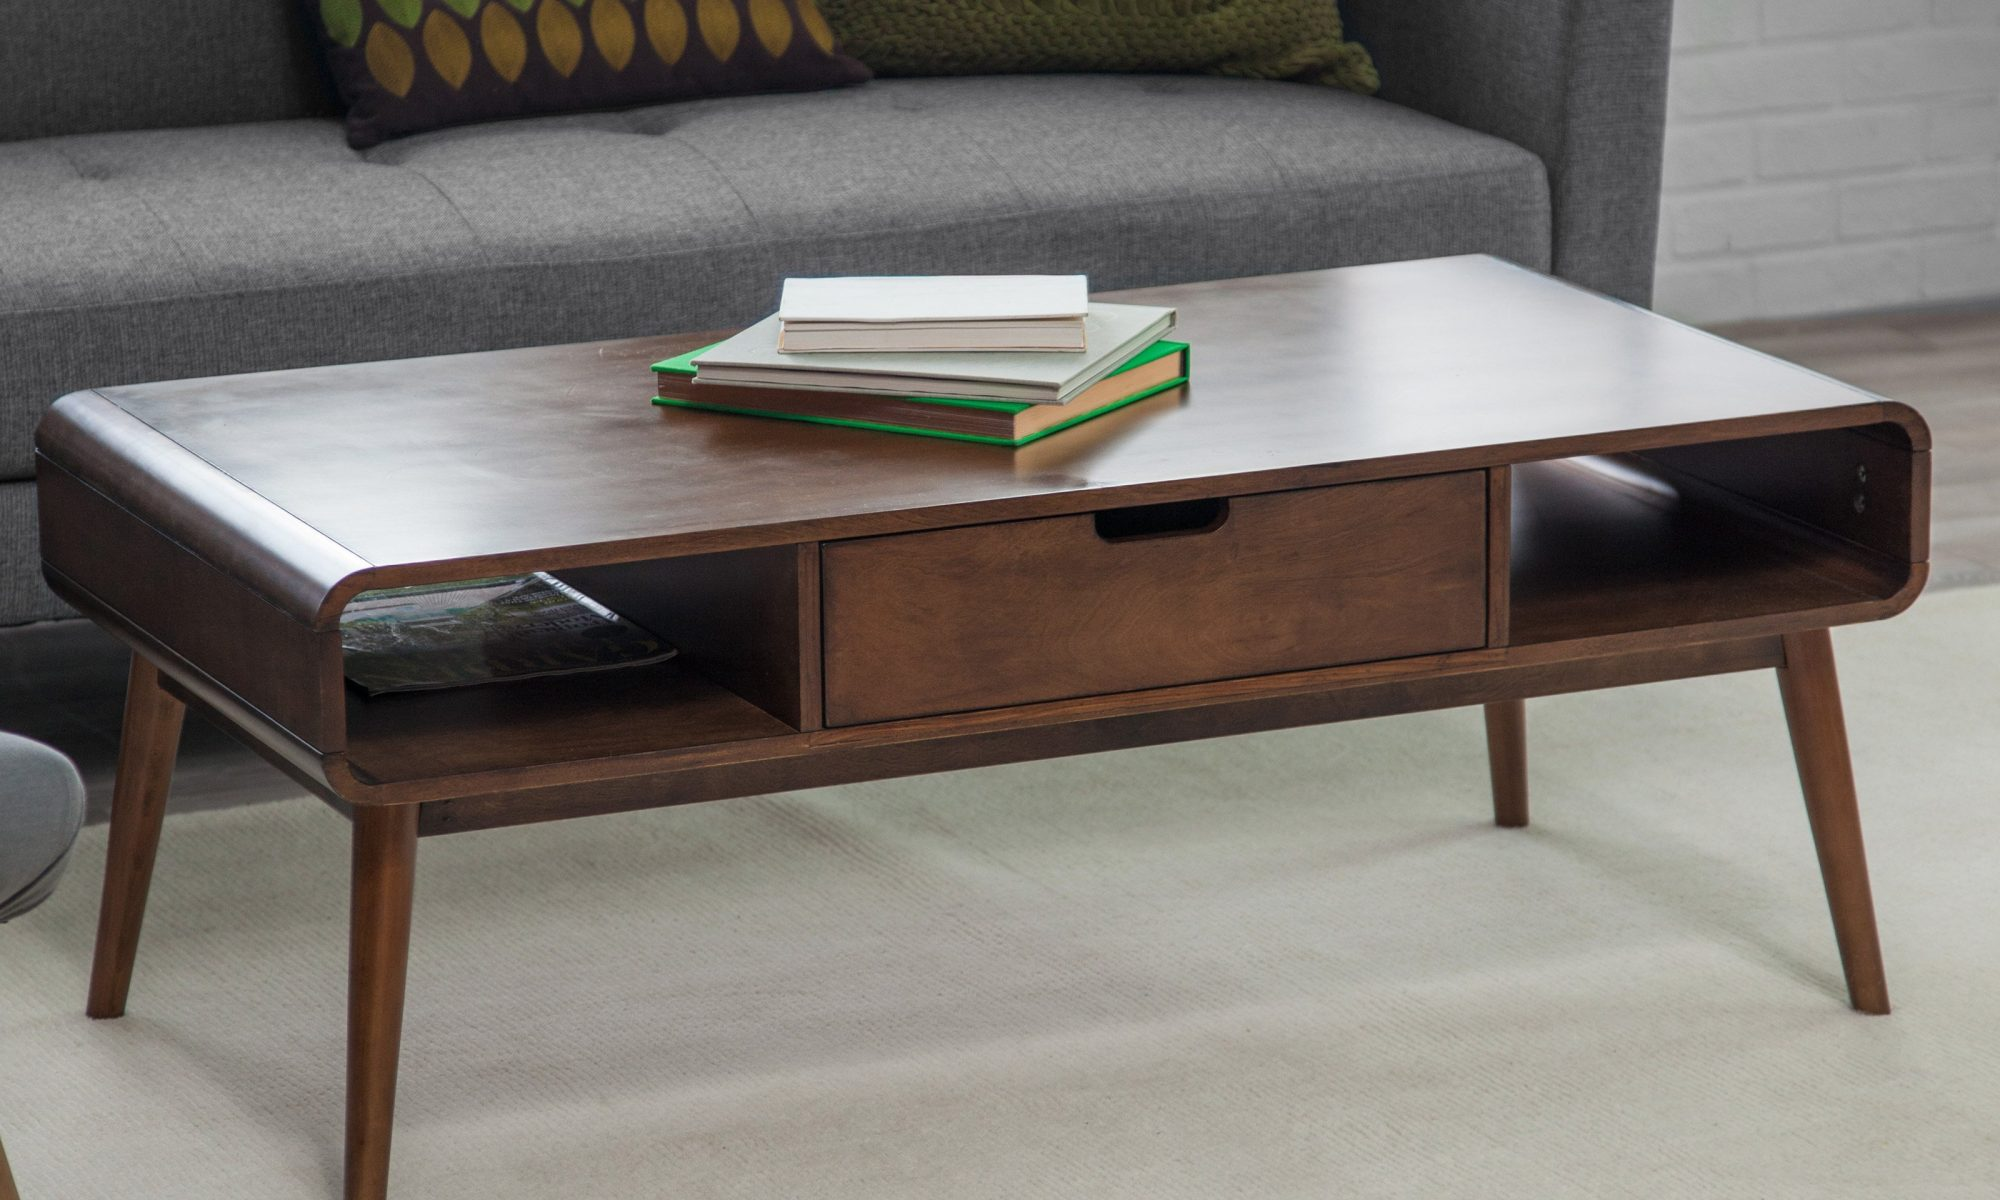 Gorgeous Coffee Table Belham Living Carter Mid Century Coffee Table  Hayneedlecoffee Table 2000x1200 Home Depot Table